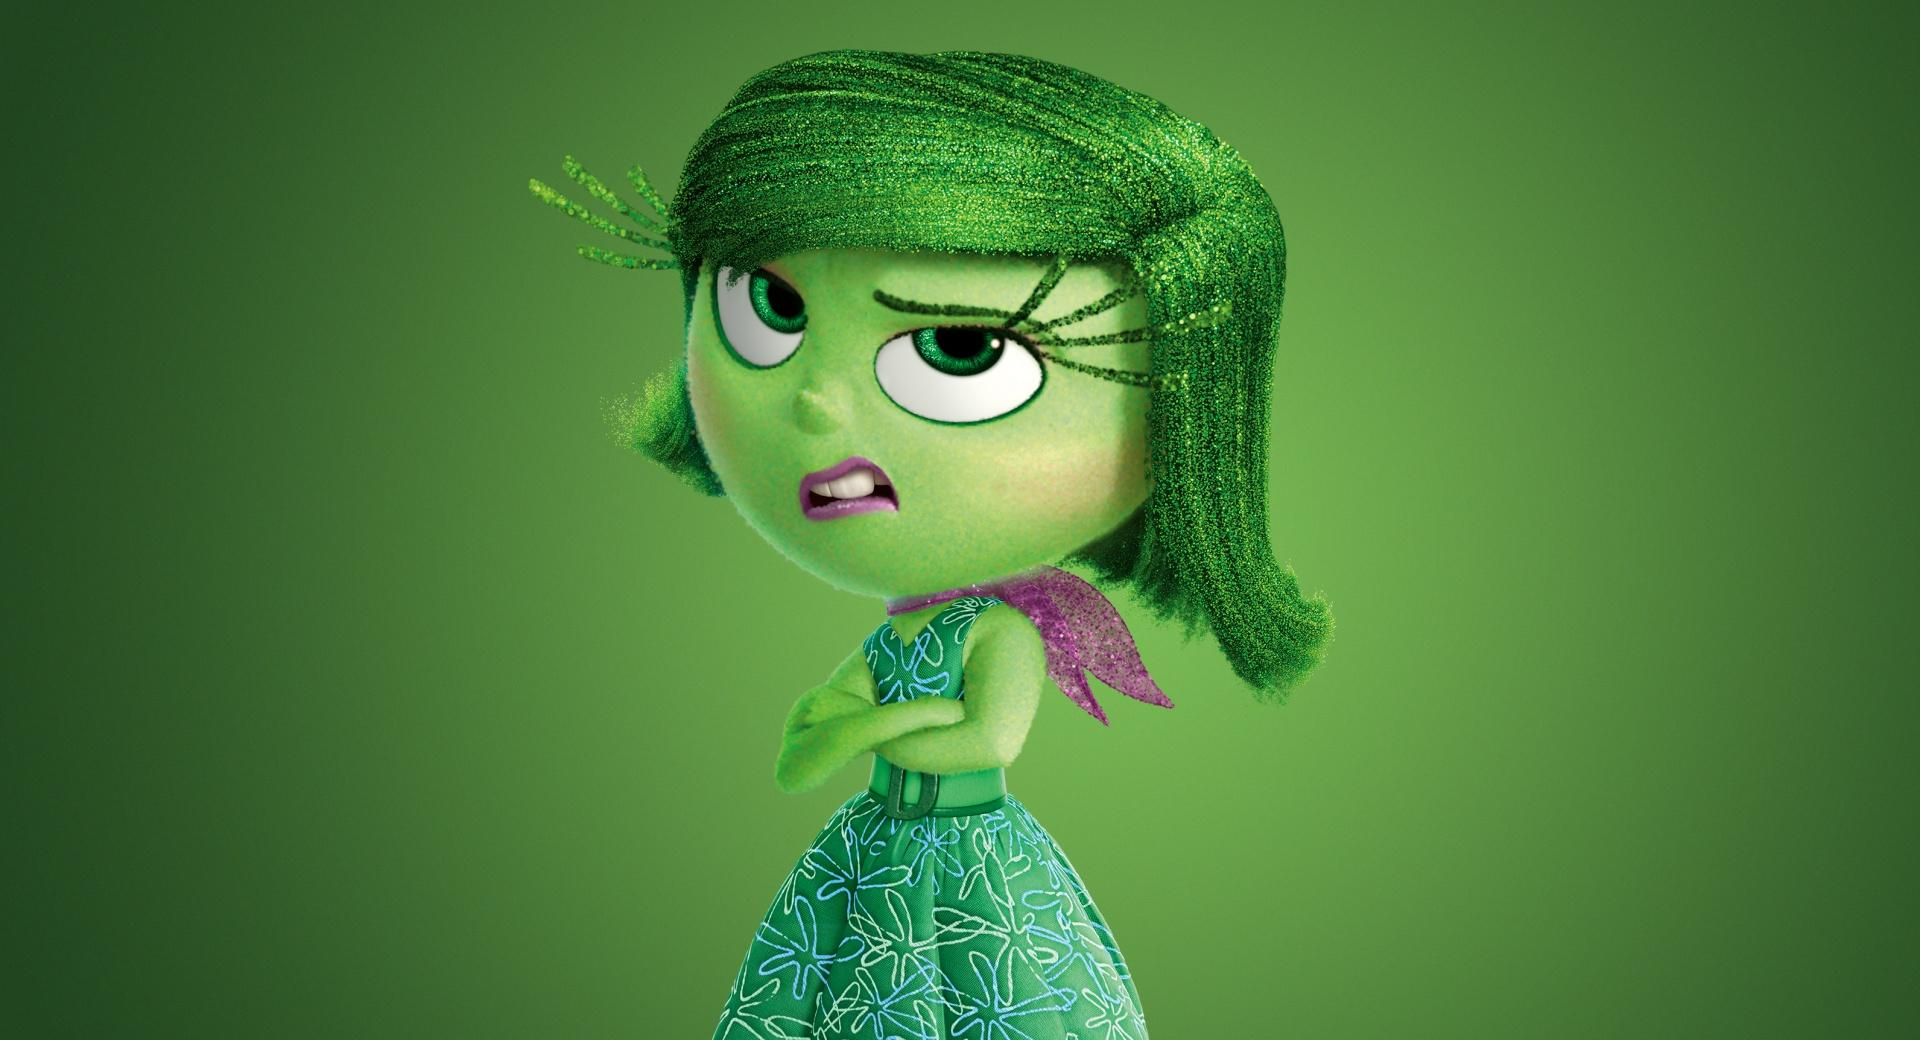 Inside Out 2015 Disgust - Disney, Pixar wallpapers HD quality